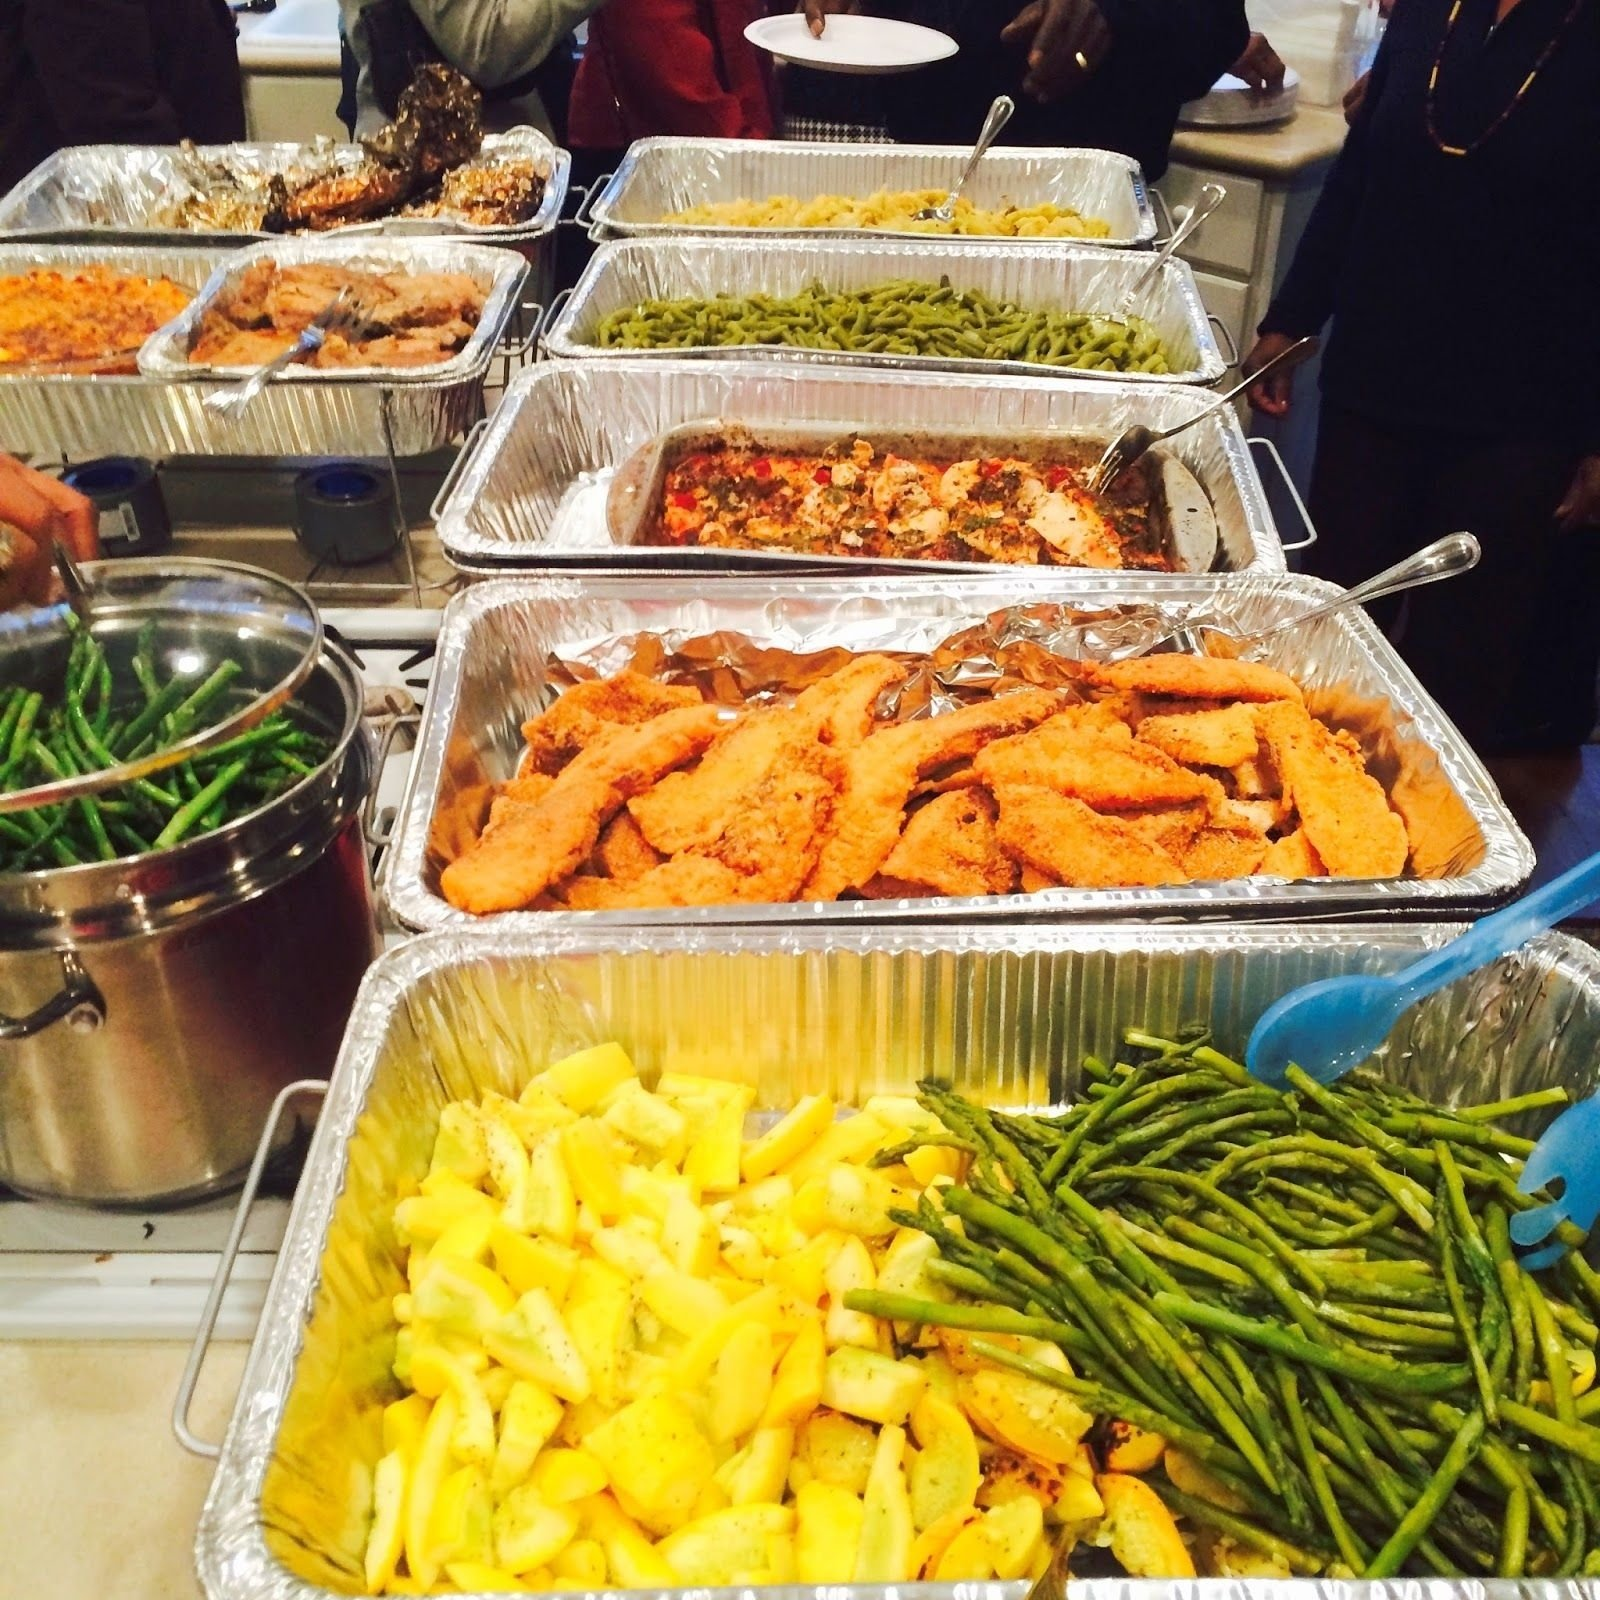 10 Spectacular Dinner Ideas For A Large Group cooking a diverse meal for a large group on a budget forever i 4 2020